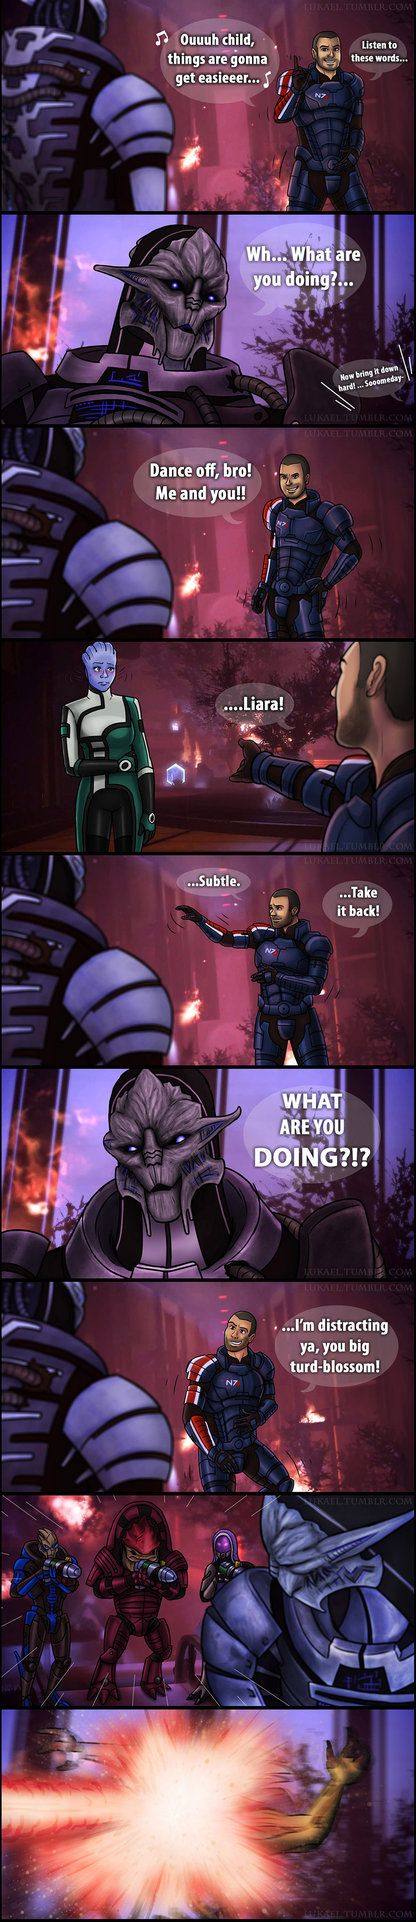 And nobody made fun of Shepard's dancing ever again A little Mass Effect / Guardians of the Galaxy crossover I thought would be fun. But then it turned out taking a whole week to finish. OH WELL